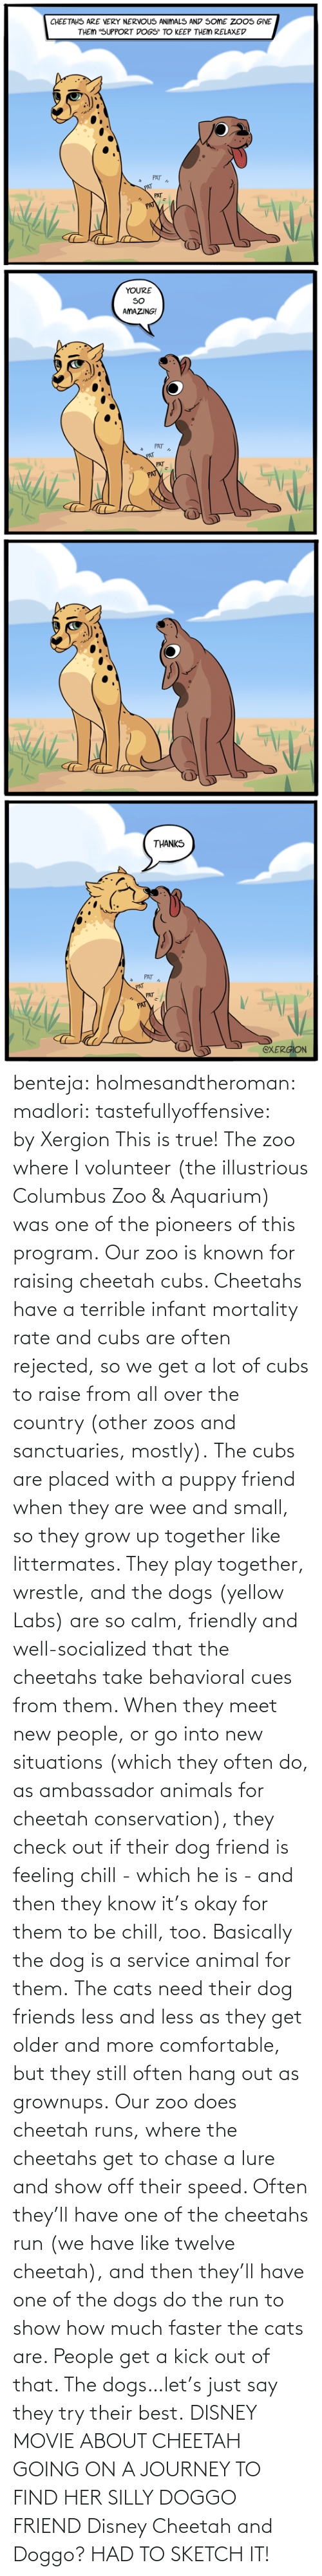 Runs: benteja:  holmesandtheroman:  madlori:  tastefullyoffensive: by Xergion This is true! The zoo where I volunteer (the illustrious Columbus Zoo & Aquarium) was one of the pioneers of this program. Our zoo is known for raising cheetah cubs. Cheetahs have a terrible infant mortality rate and cubs are often rejected, so we get a lot of cubs to raise from all over the country (other zoos and sanctuaries, mostly). The cubs are placed with a puppy friend when they are wee and small, so they grow up together like littermates. They play together, wrestle, and the dogs (yellow Labs) are so calm, friendly and well-socialized that the cheetahs take behavioral cues from them. When they meet new people, or go into new situations (which they often do, as ambassador animals for cheetah conservation), they check out if their dog friend is feeling chill - which he is - and then they know it's okay for them to be chill, too. Basically the dog is a service animal for them. The cats need their dog friends less and less as they get older and more comfortable, but they still often hang out as grownups. Our zoo does cheetah runs, where the cheetahs get to chase a lure and show off their speed. Often they'll have one of the cheetahs run (we have like twelve cheetah), and then they'll have one of the dogs do the run to show how much faster the cats are. People get a kick out of that. The dogs…let's just say they try their best.   DISNEY MOVIE ABOUT CHEETAH GOING ON A JOURNEY TO FIND HER SILLY DOGGO FRIEND  Disney Cheetah and Doggo? HAD TO SKETCH IT!